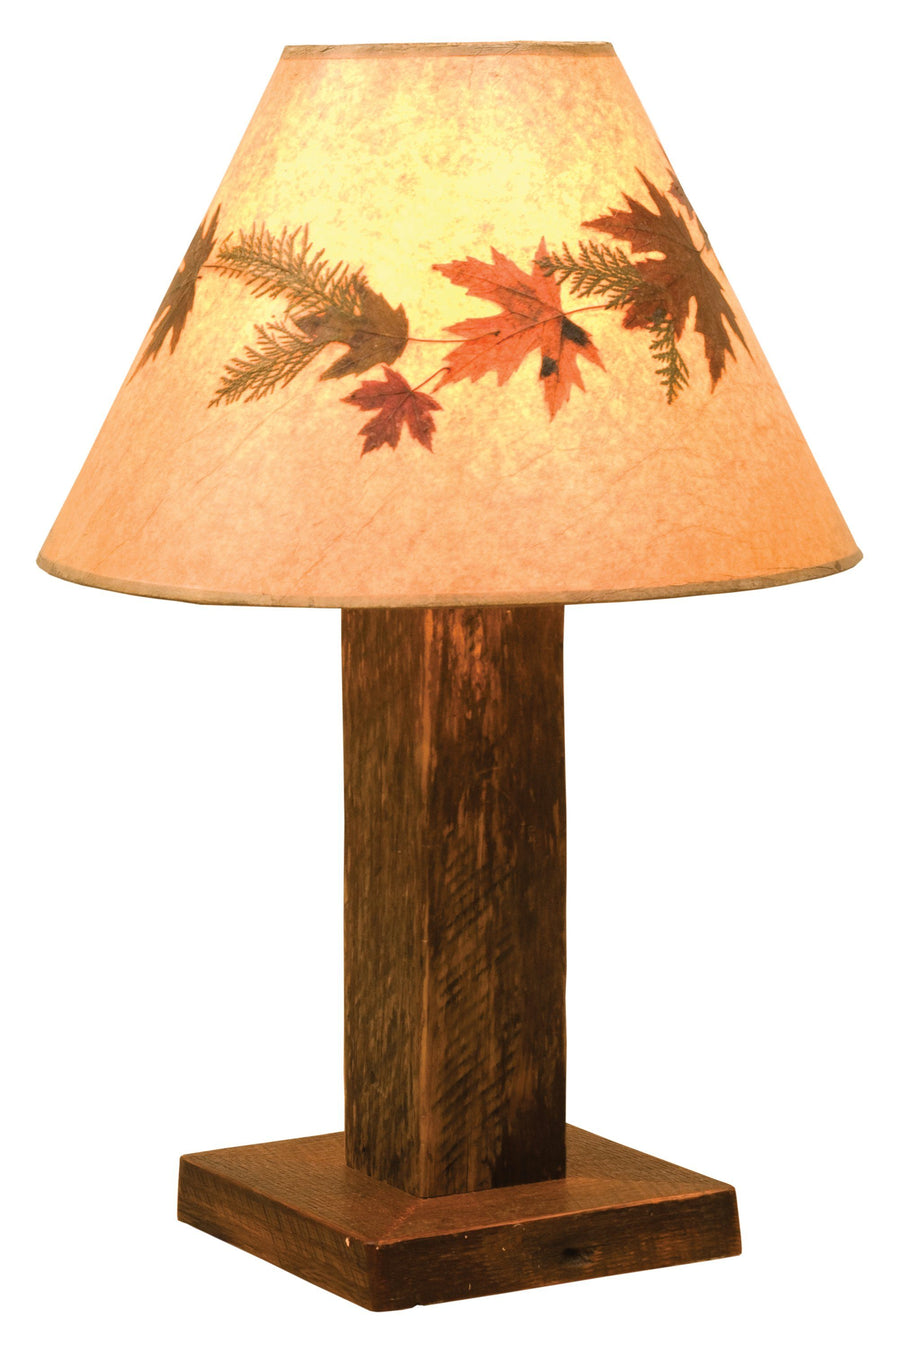 Barnwood Table Lamp - with Large Foliage Lamp Shade - Rustic Deco Incorporated